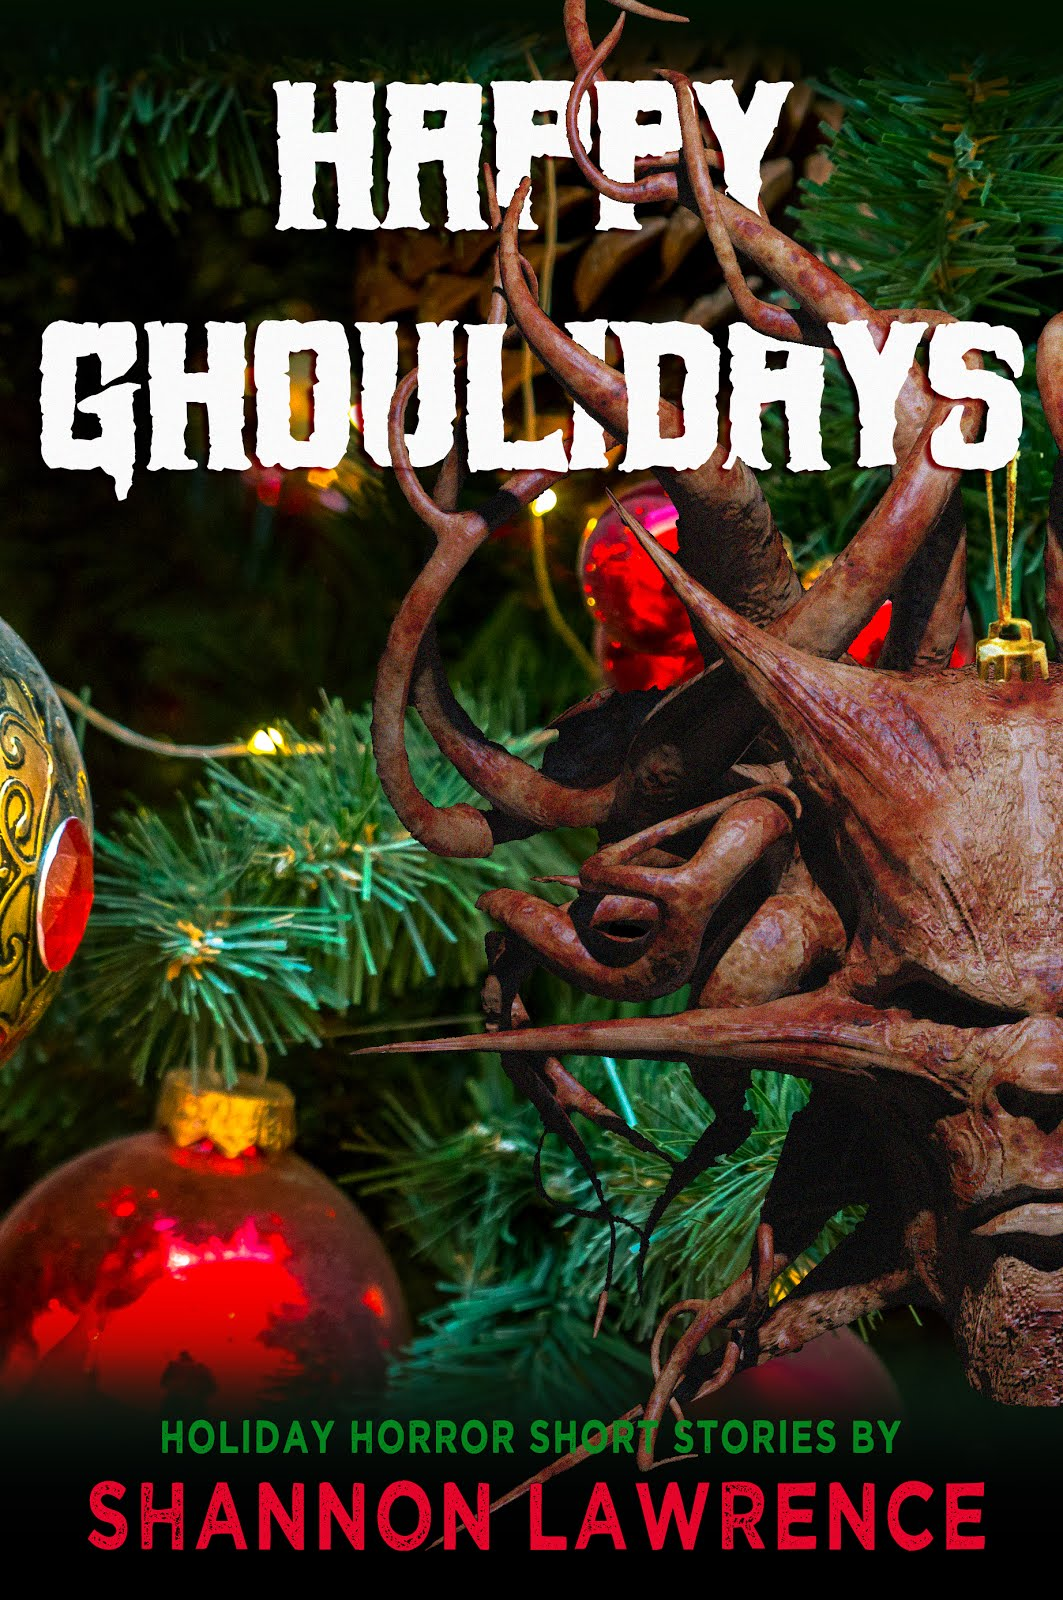 Happy Ghoulidays